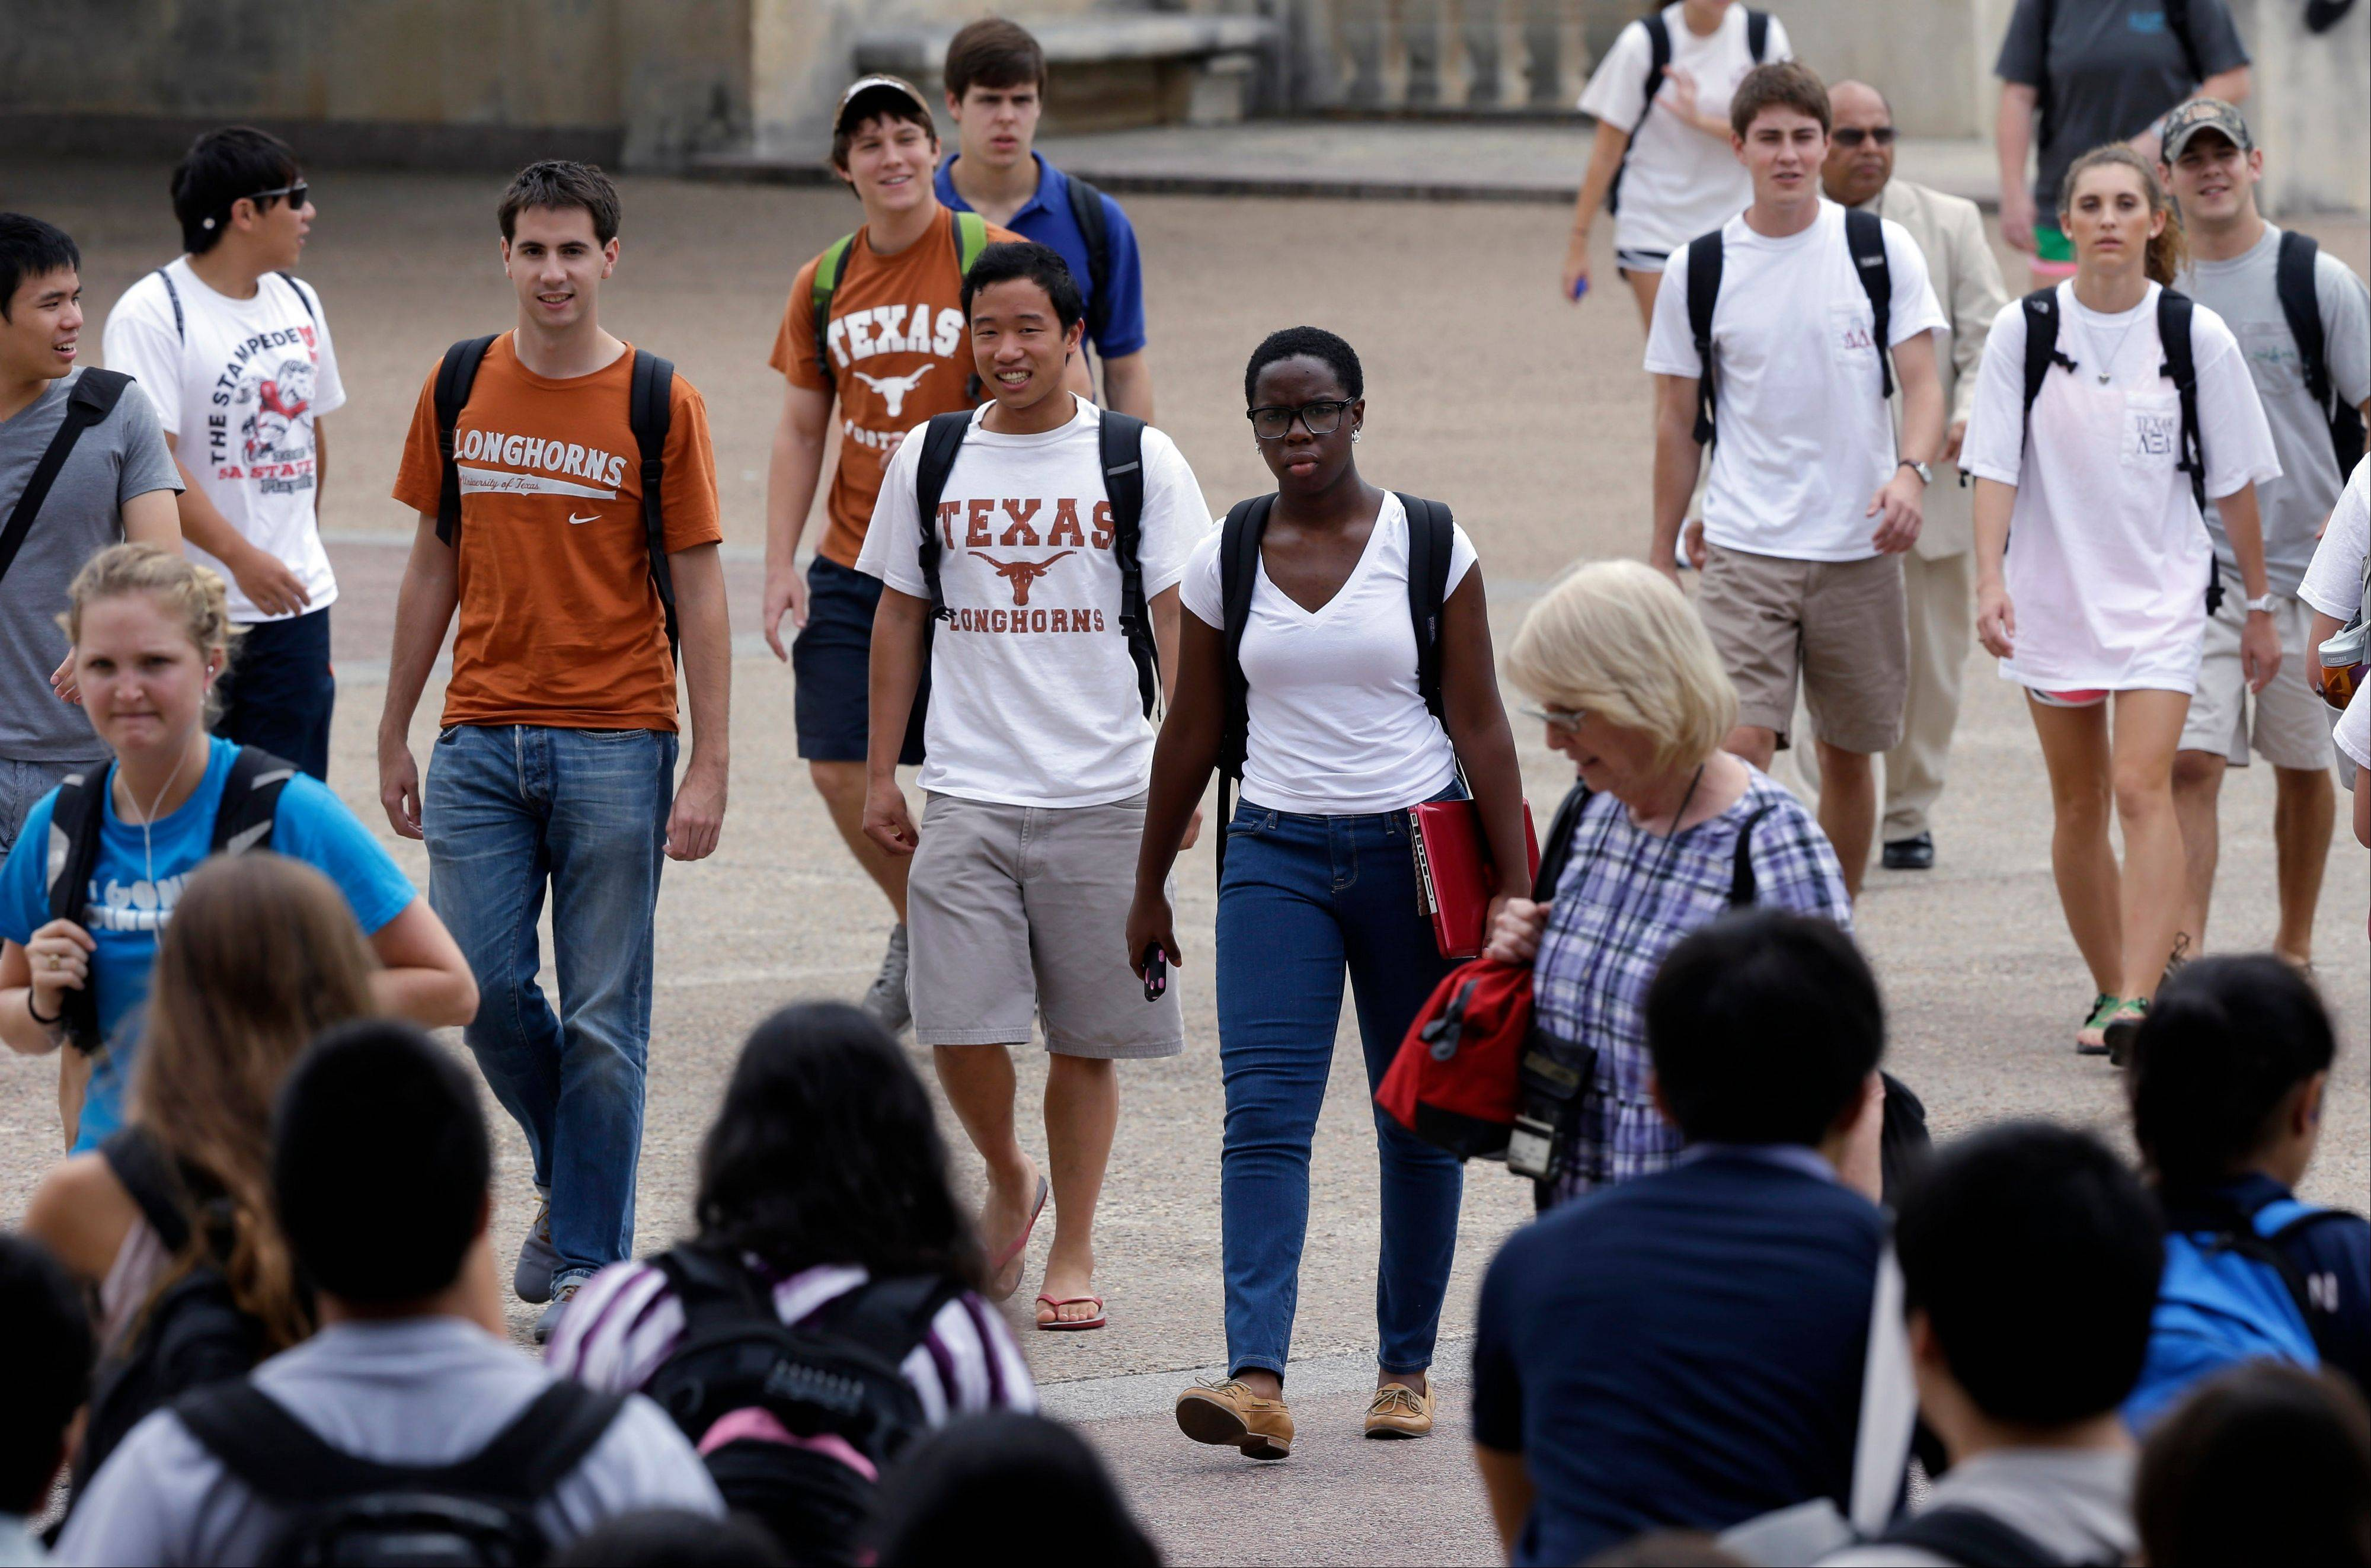 Students walk through the University of Texas at Austin campus in Austin, Texas. This giant flagship campus — once slow to integrate — is now among the most diverse the country.